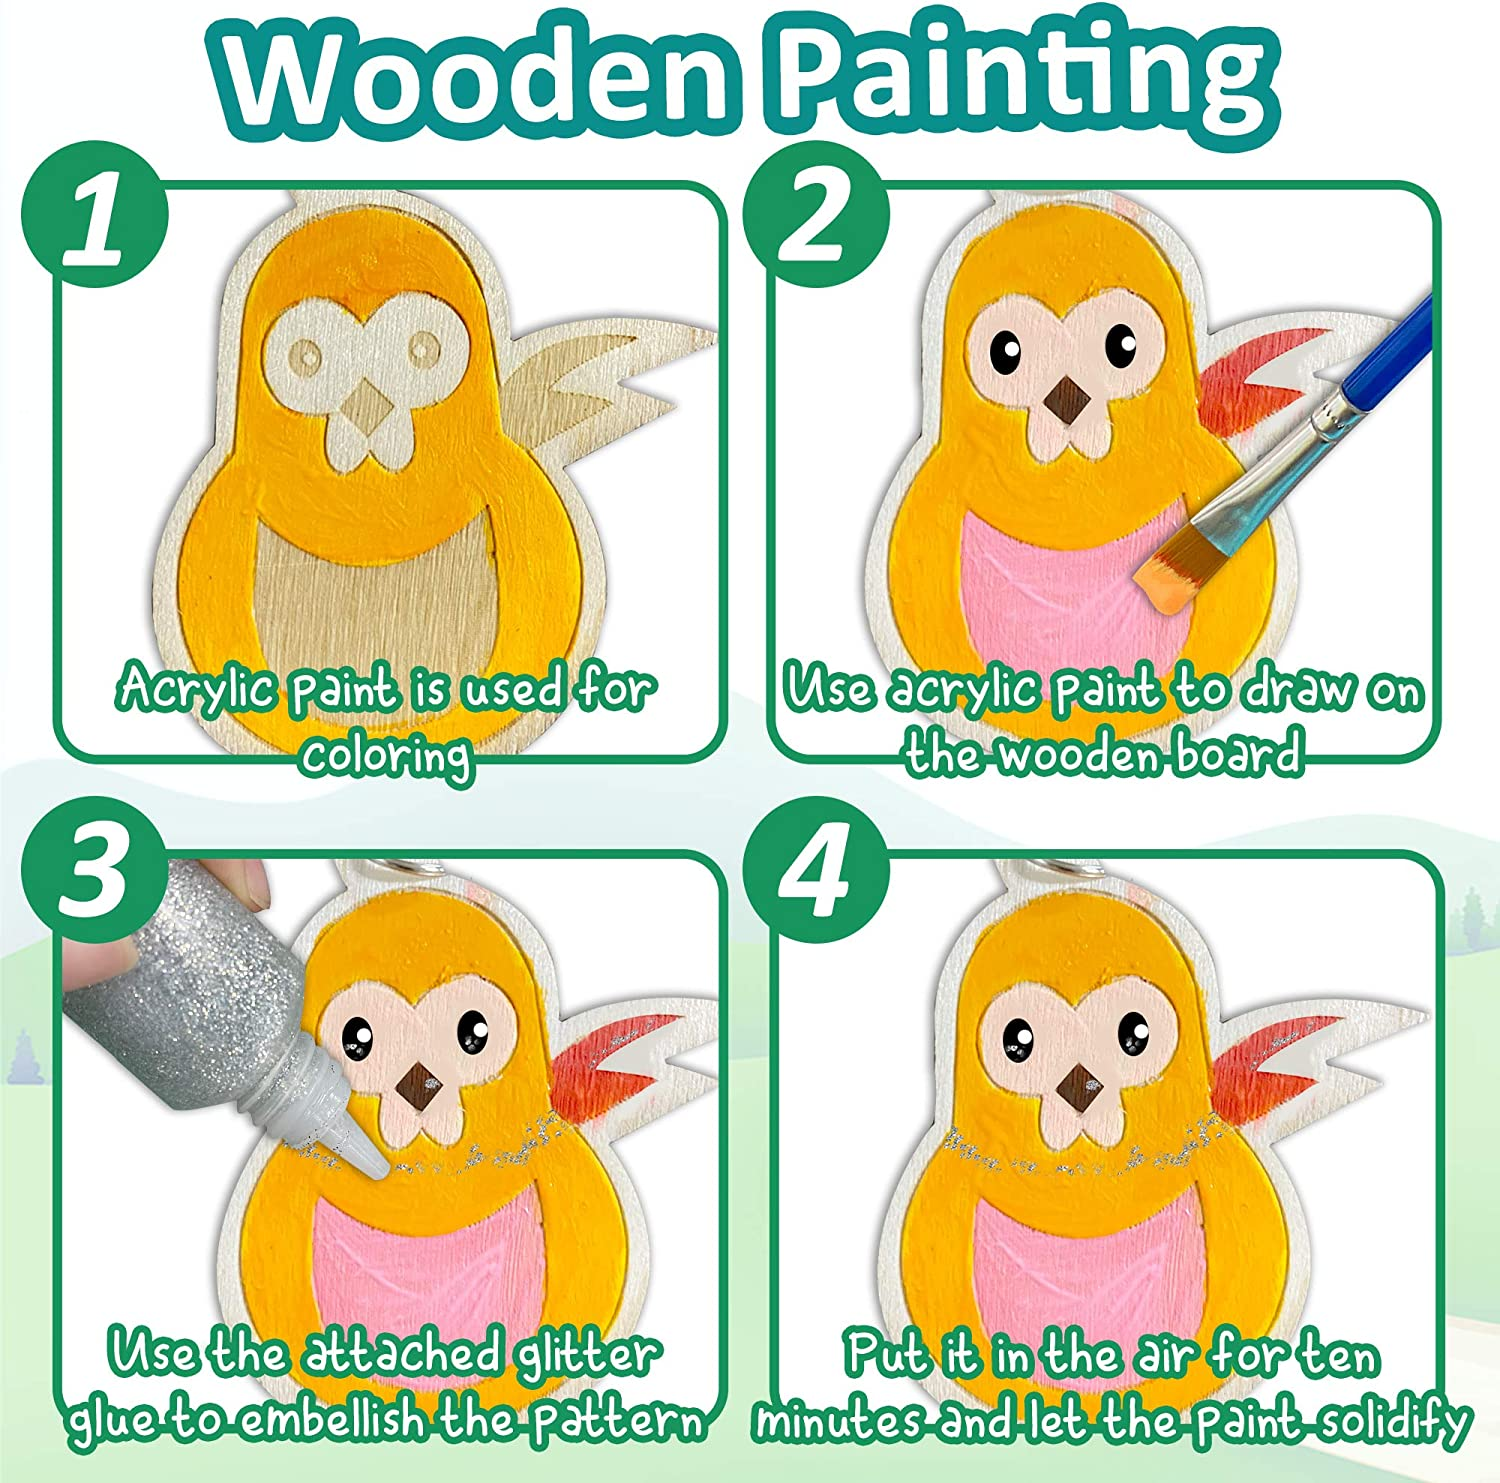 Jantens 29Pcs Wooden Creativity Arts /& Crafts Painting Kit Decorate Your Own for Kids Paint Gift Includes 13 Wooden Animal Crafts 2 Paintbrushes 1 Glitter Glue and 1 Color Palette 12 Paints